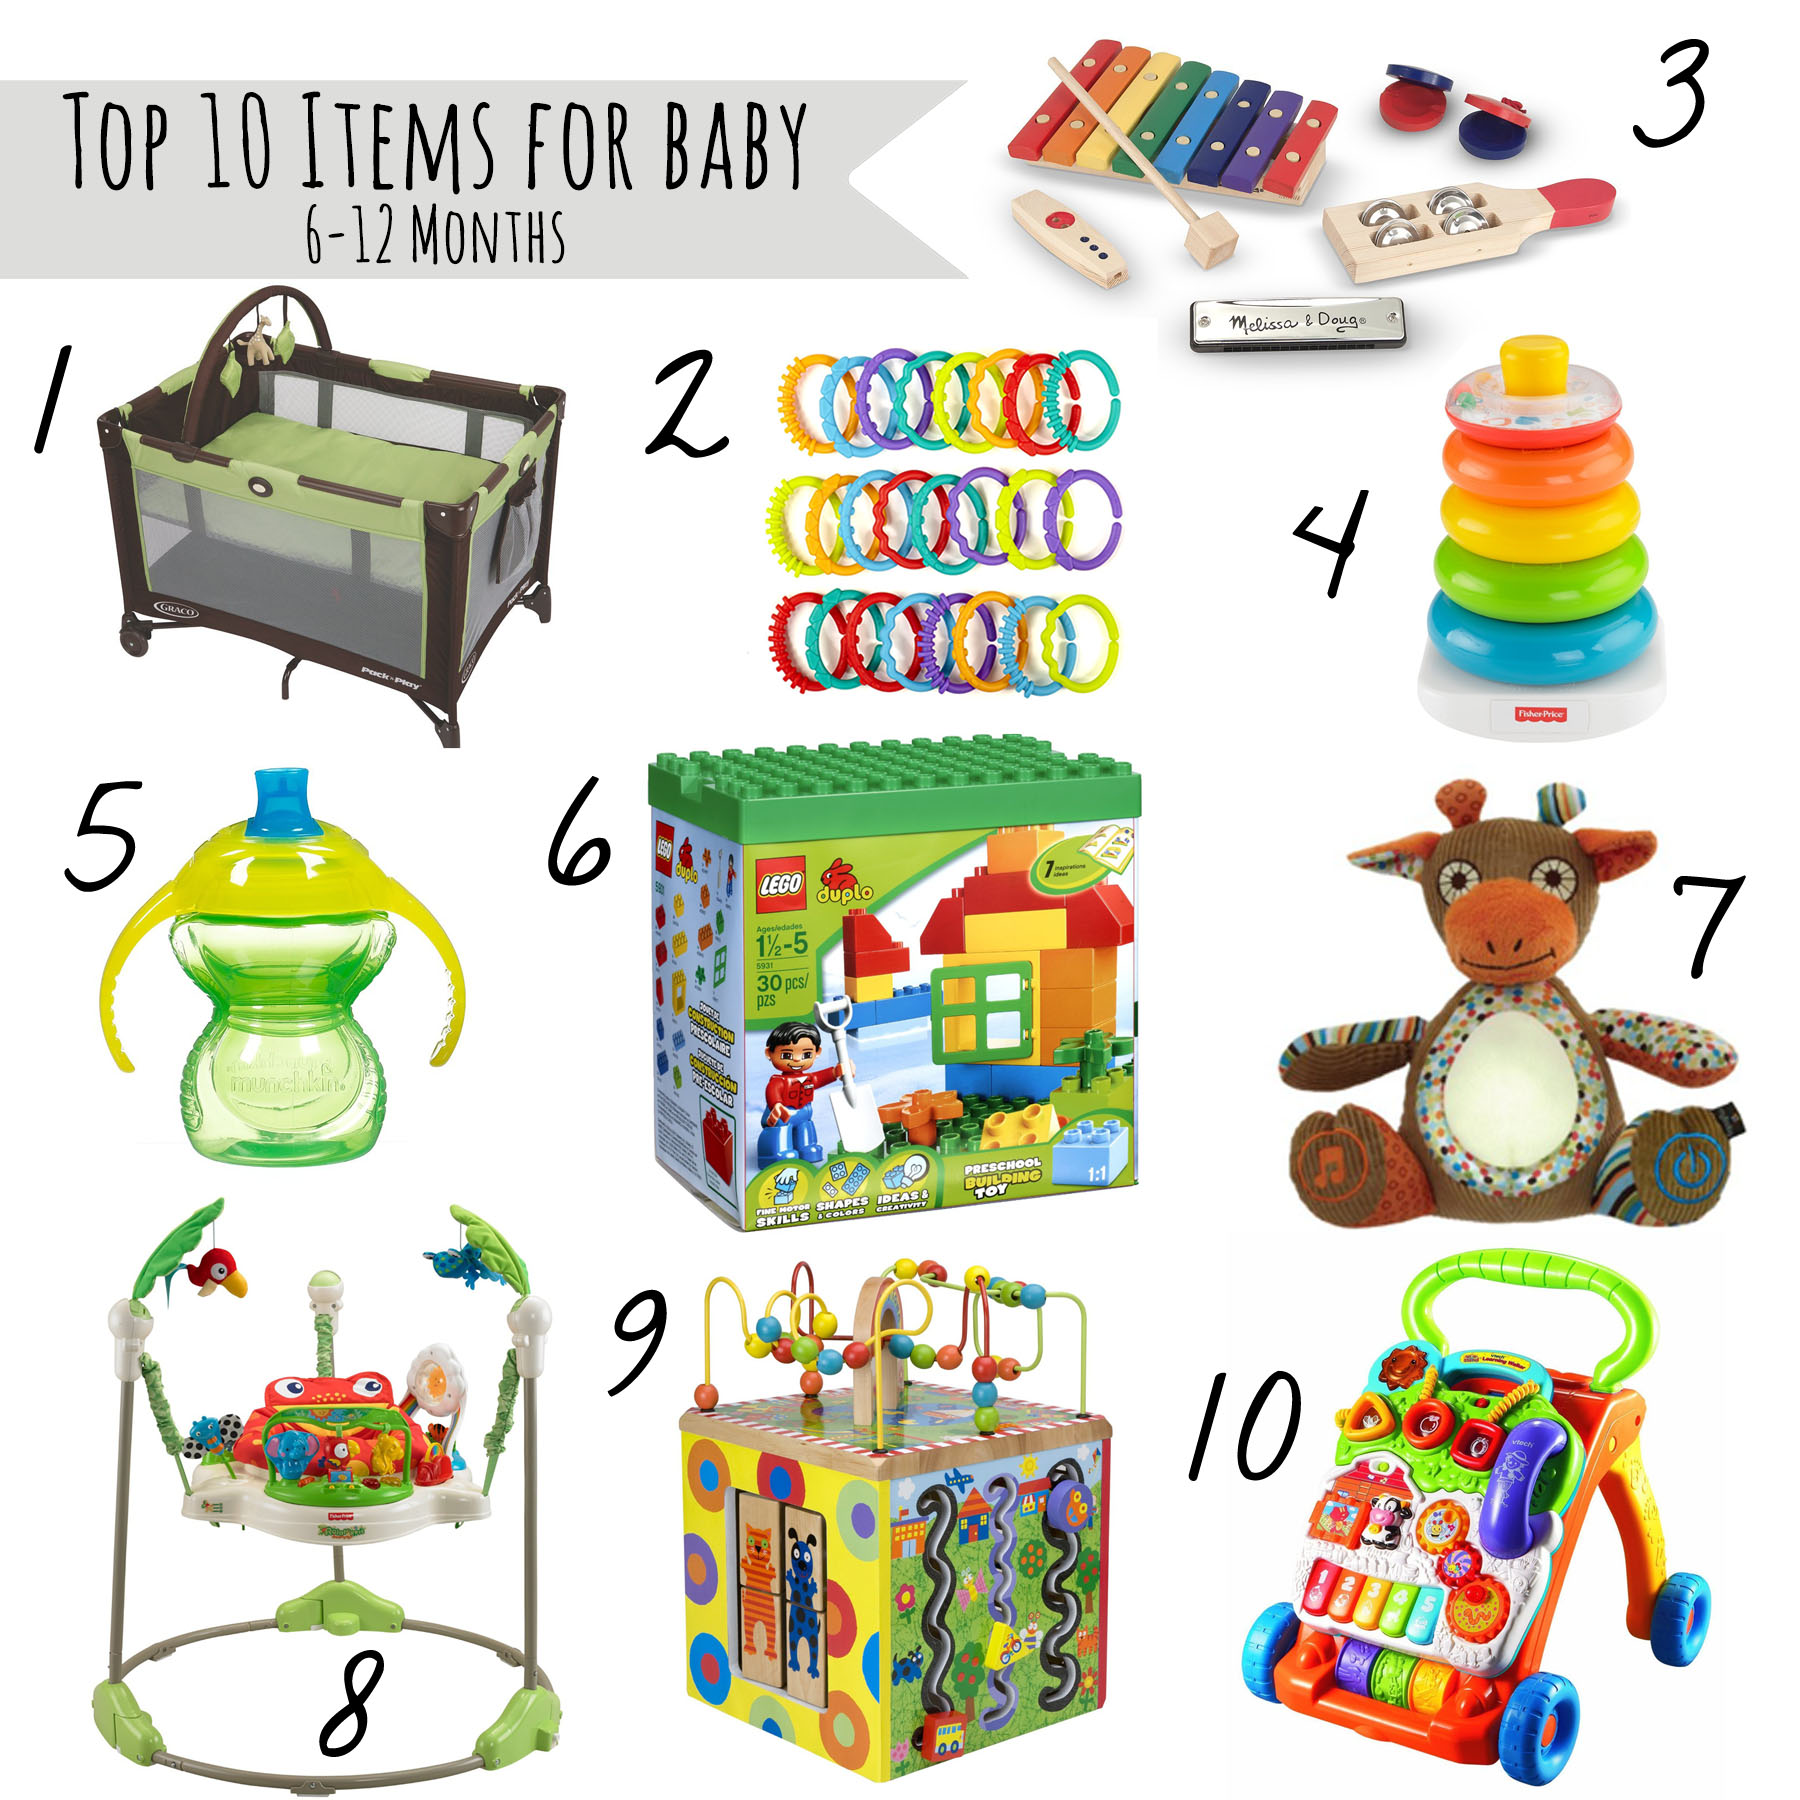 Toys For 1 Month Olds : Top must haves for babies month old our